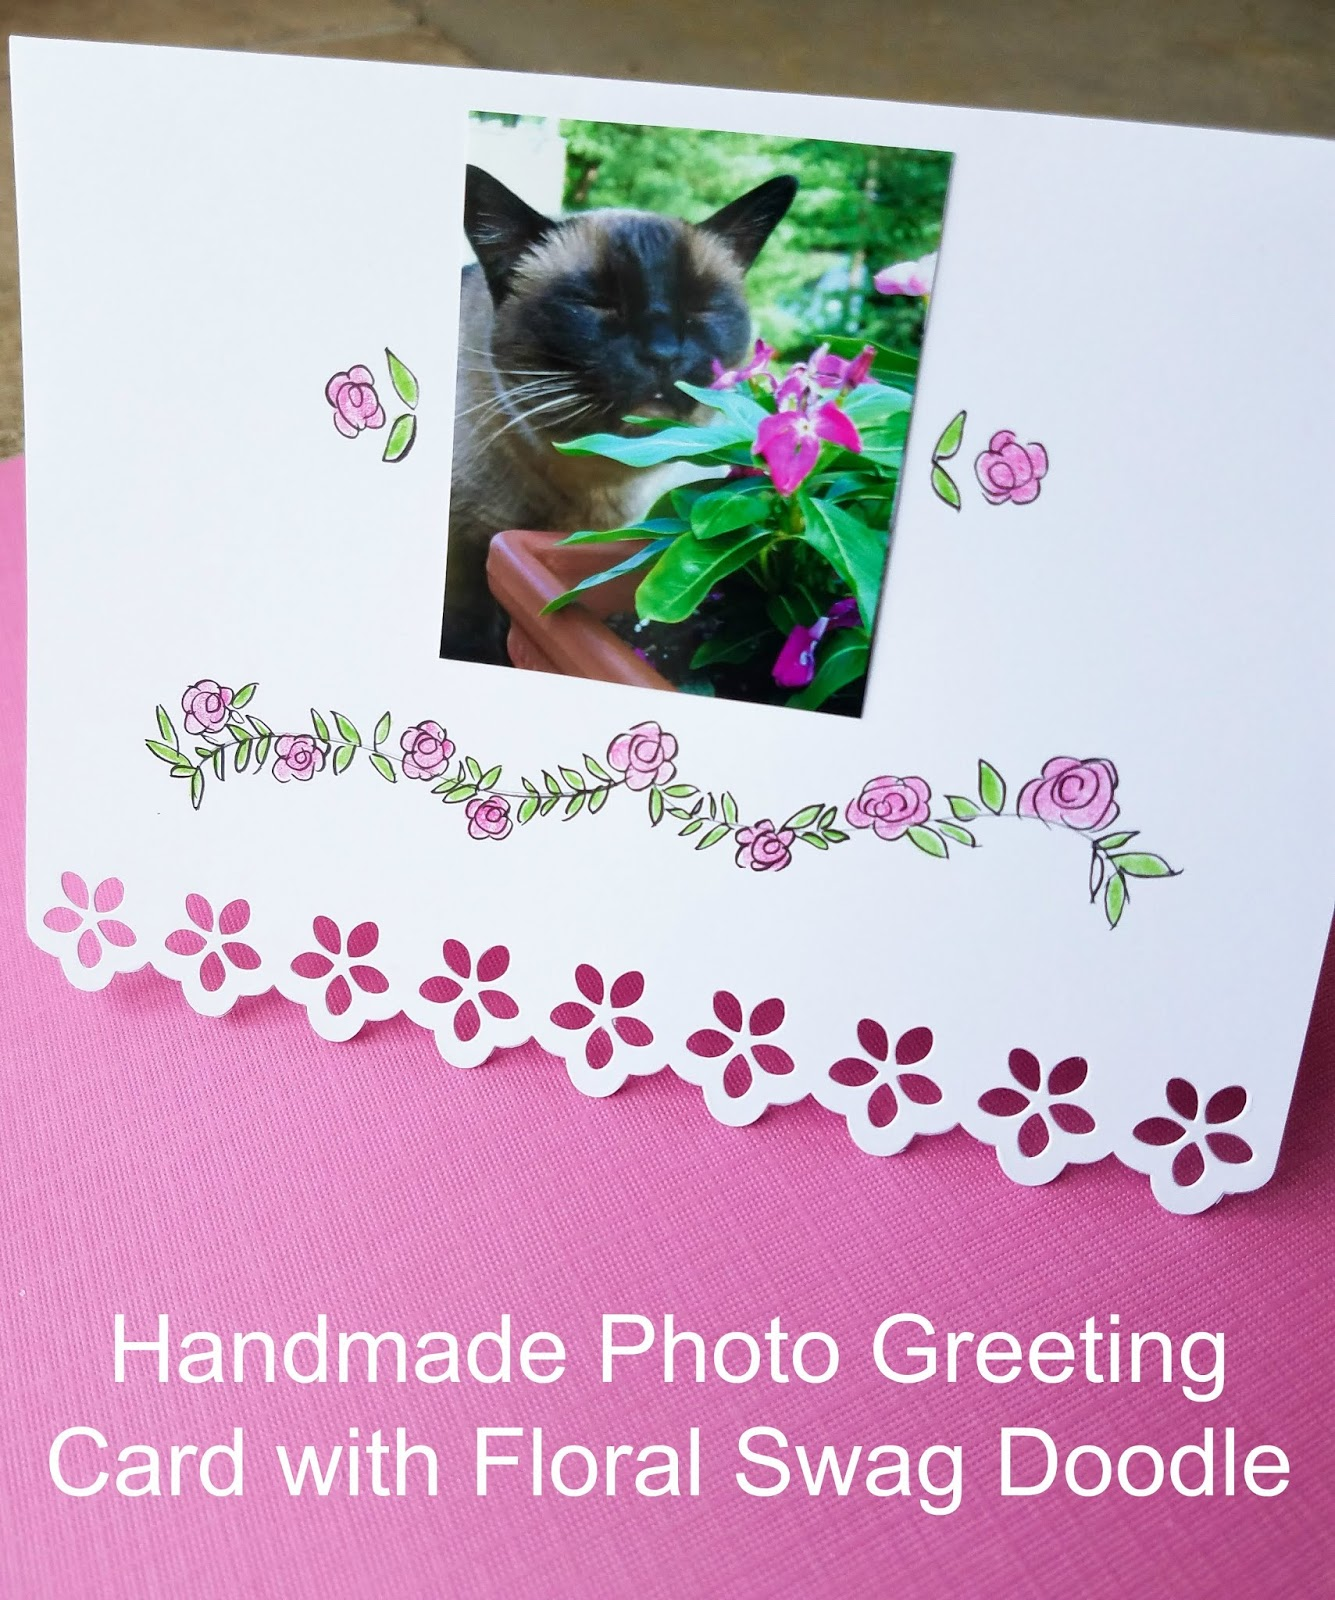 Handmade greeting card with floral doodle